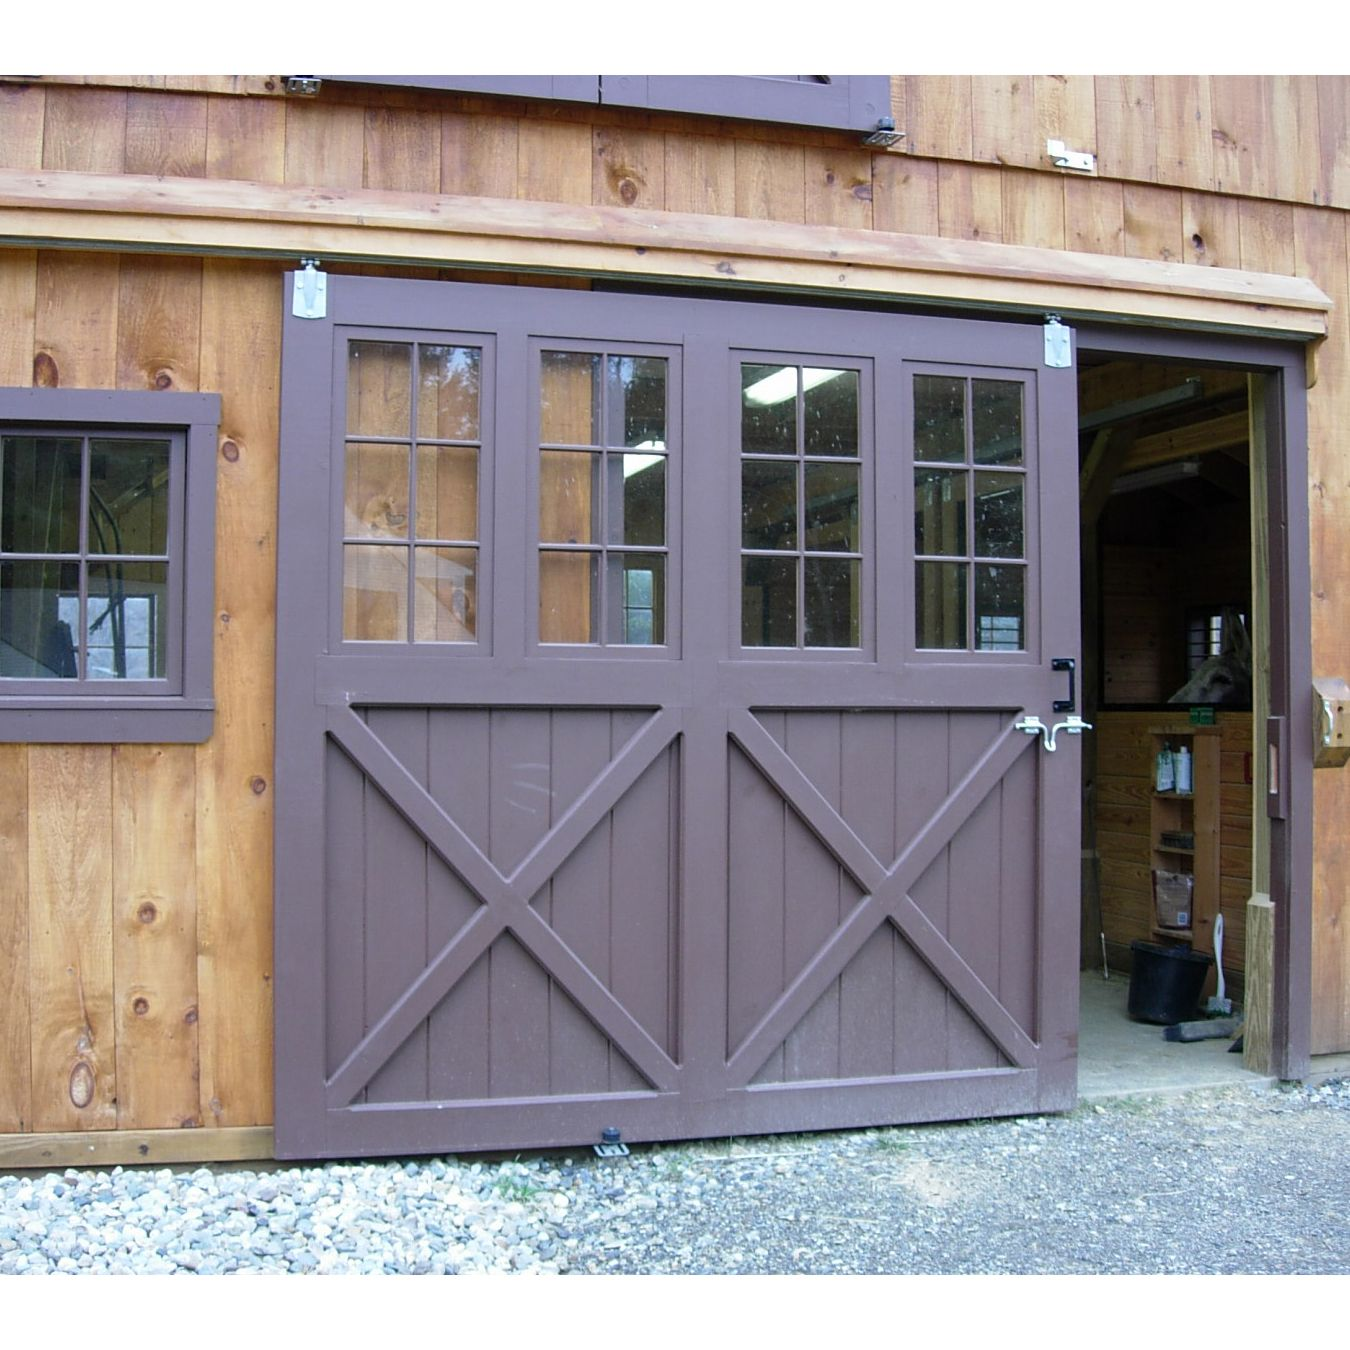 Exterior Glass Barn Doors single sliding barn door for a garage door | o u t d o o r s